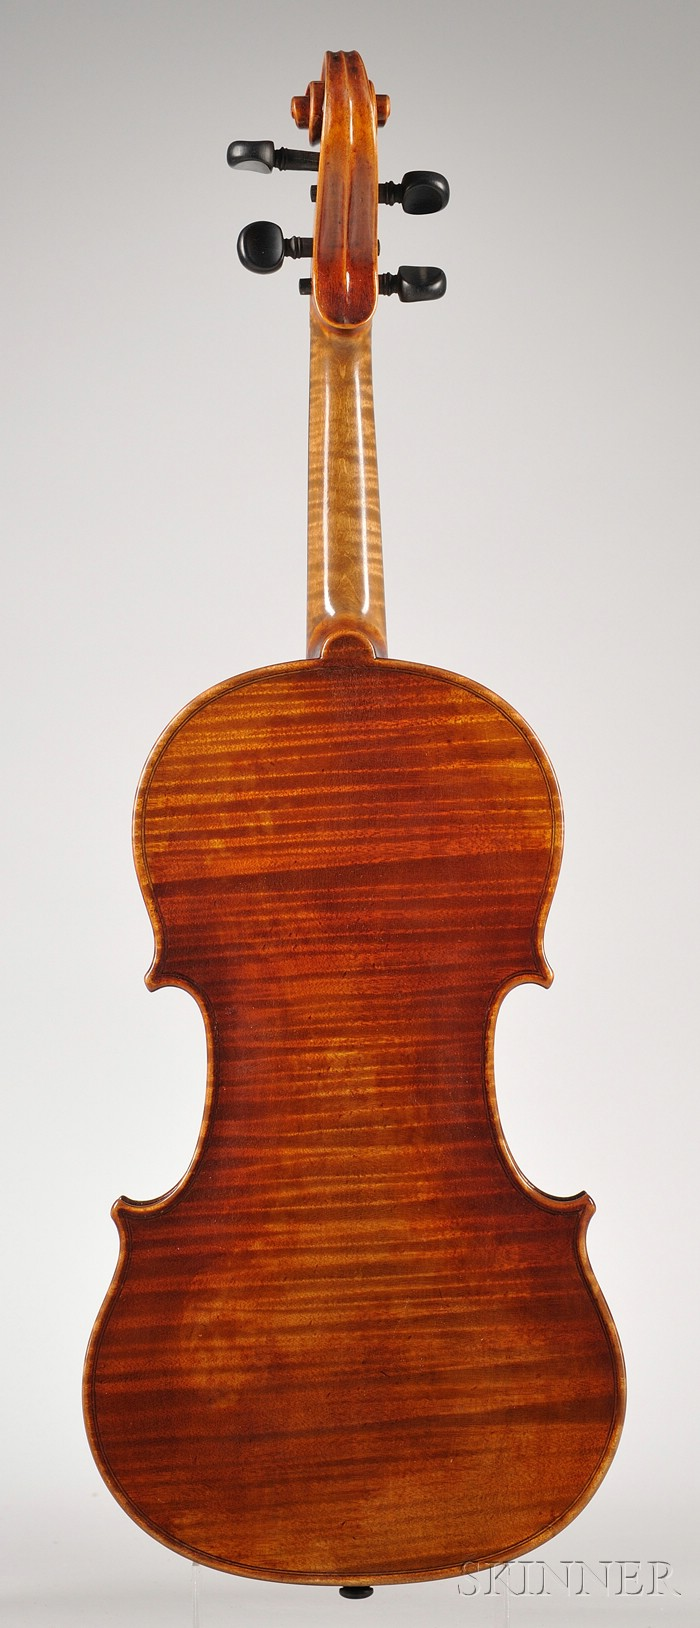 Markneukirchen Violin, Ernst Heinrich Roth Workshop, c. 1923